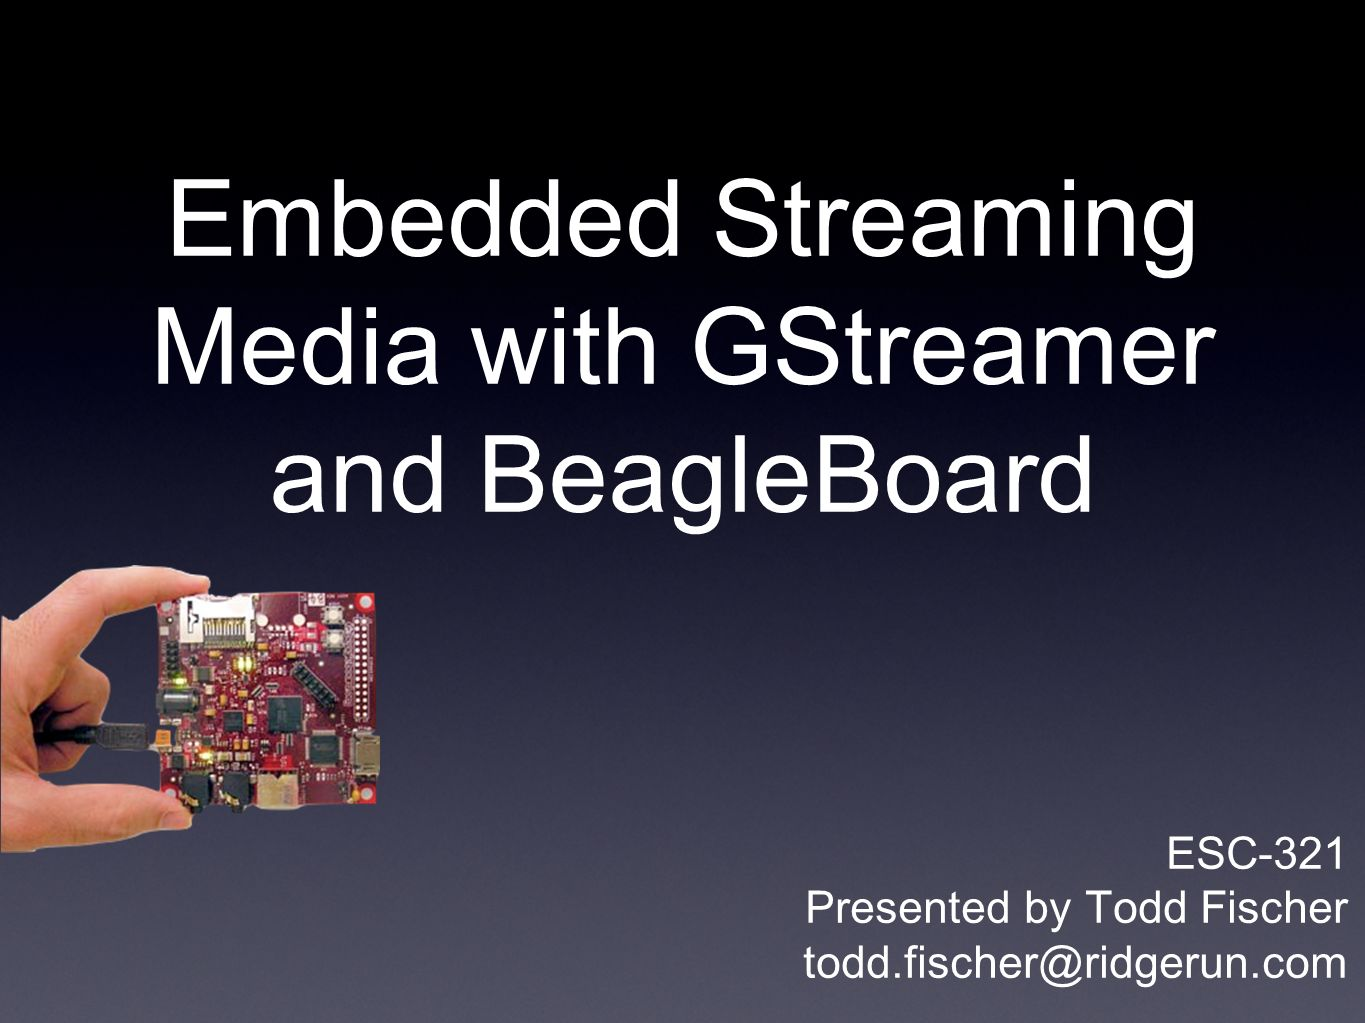 Embedded Streaming Media with GStreamer and BeagleBoard